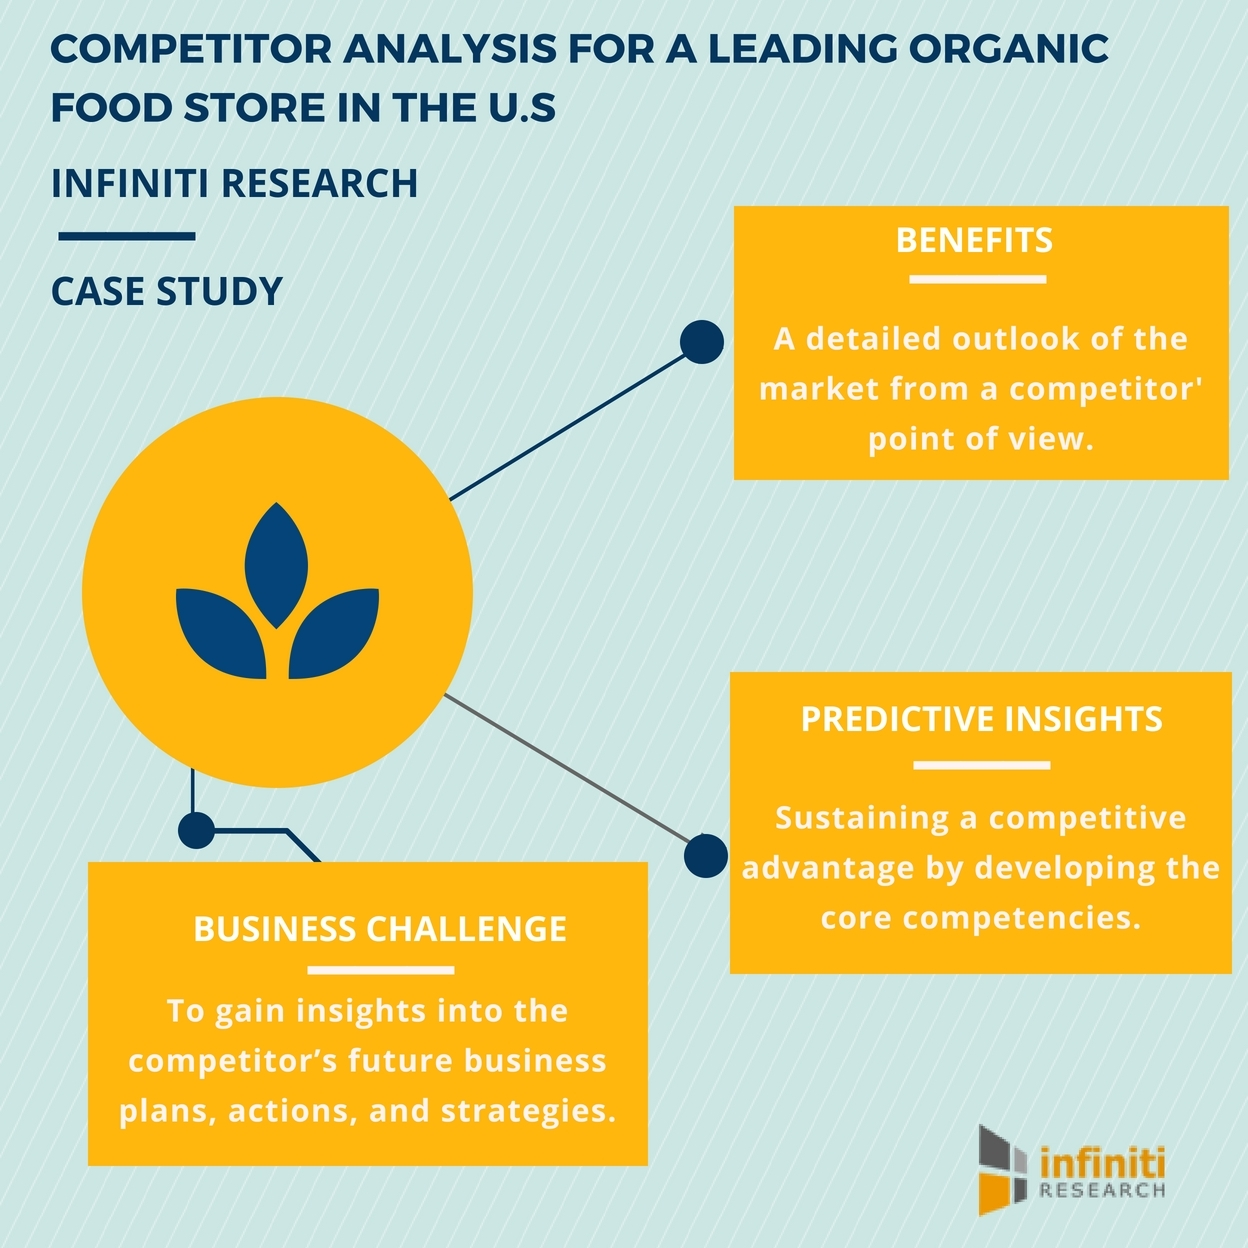 Infiniti research developed a competitor analysis template for a infiniti research developed a competitor analysis template for a leading organic food store in the us request for a proposal now business wire cheaphphosting Image collections